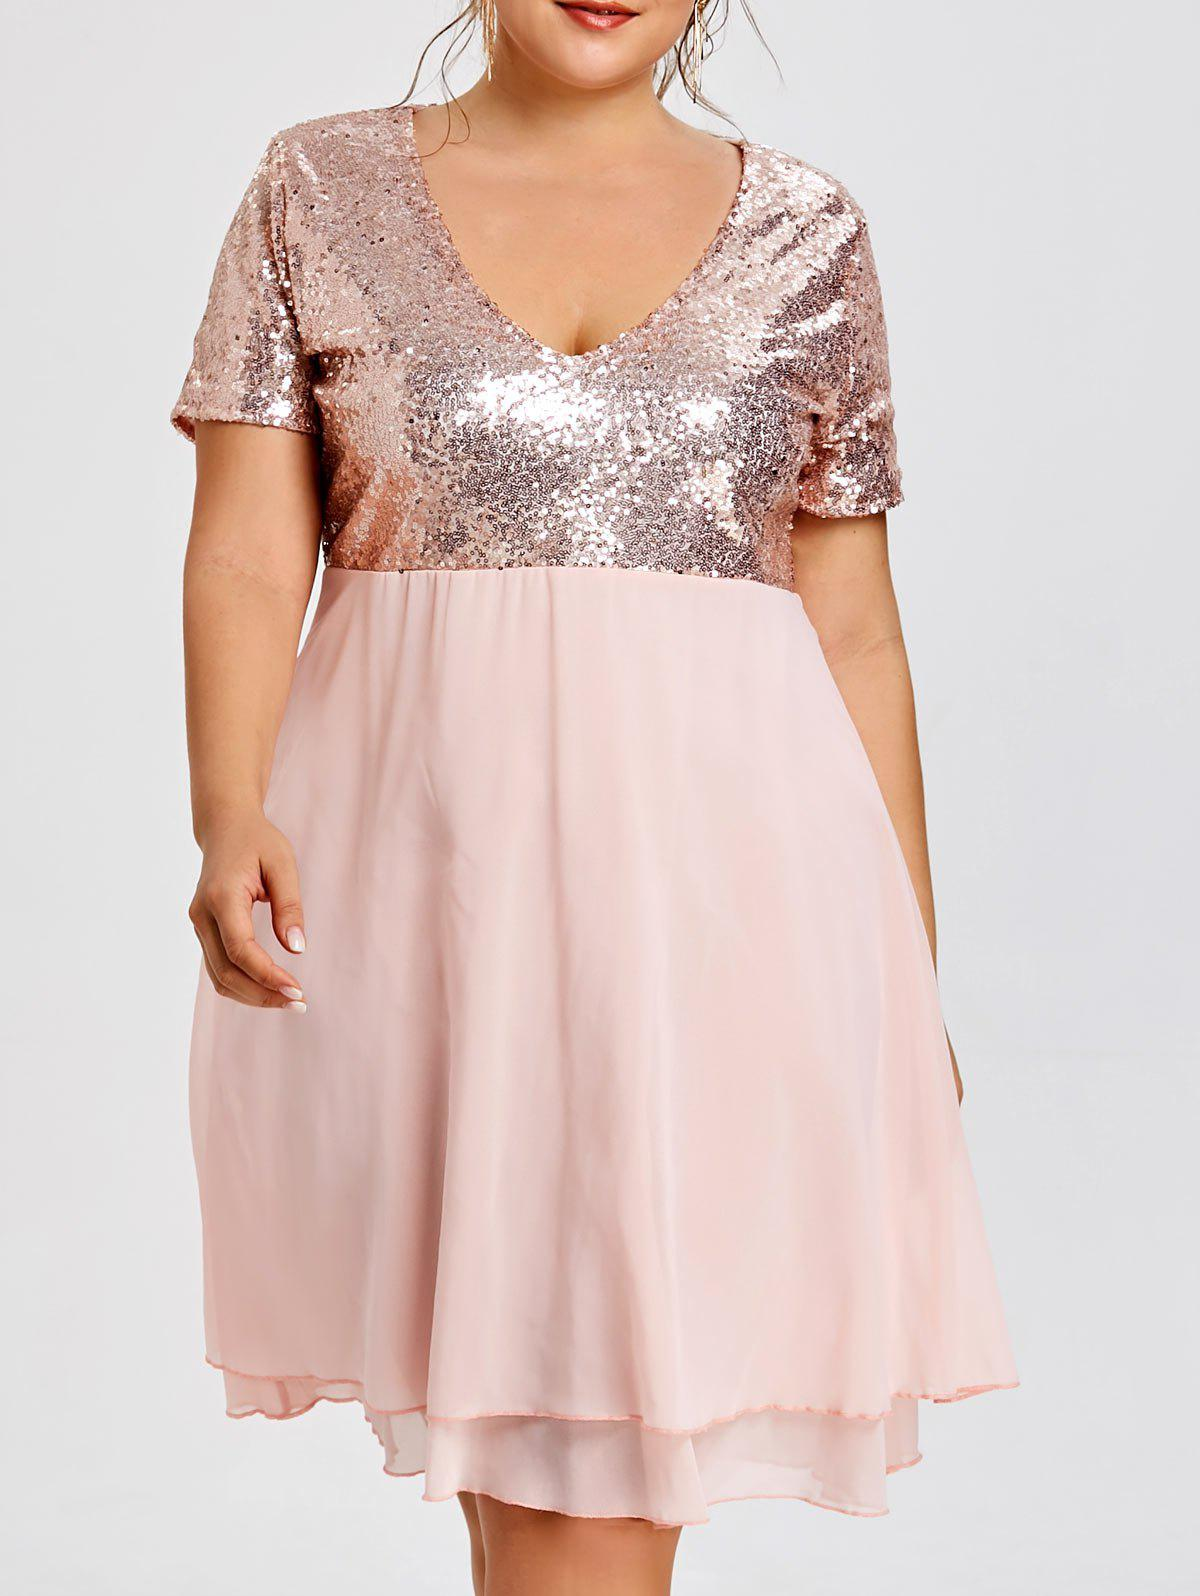 Shops Glitter Plus Size Sequin Homecoming Dress